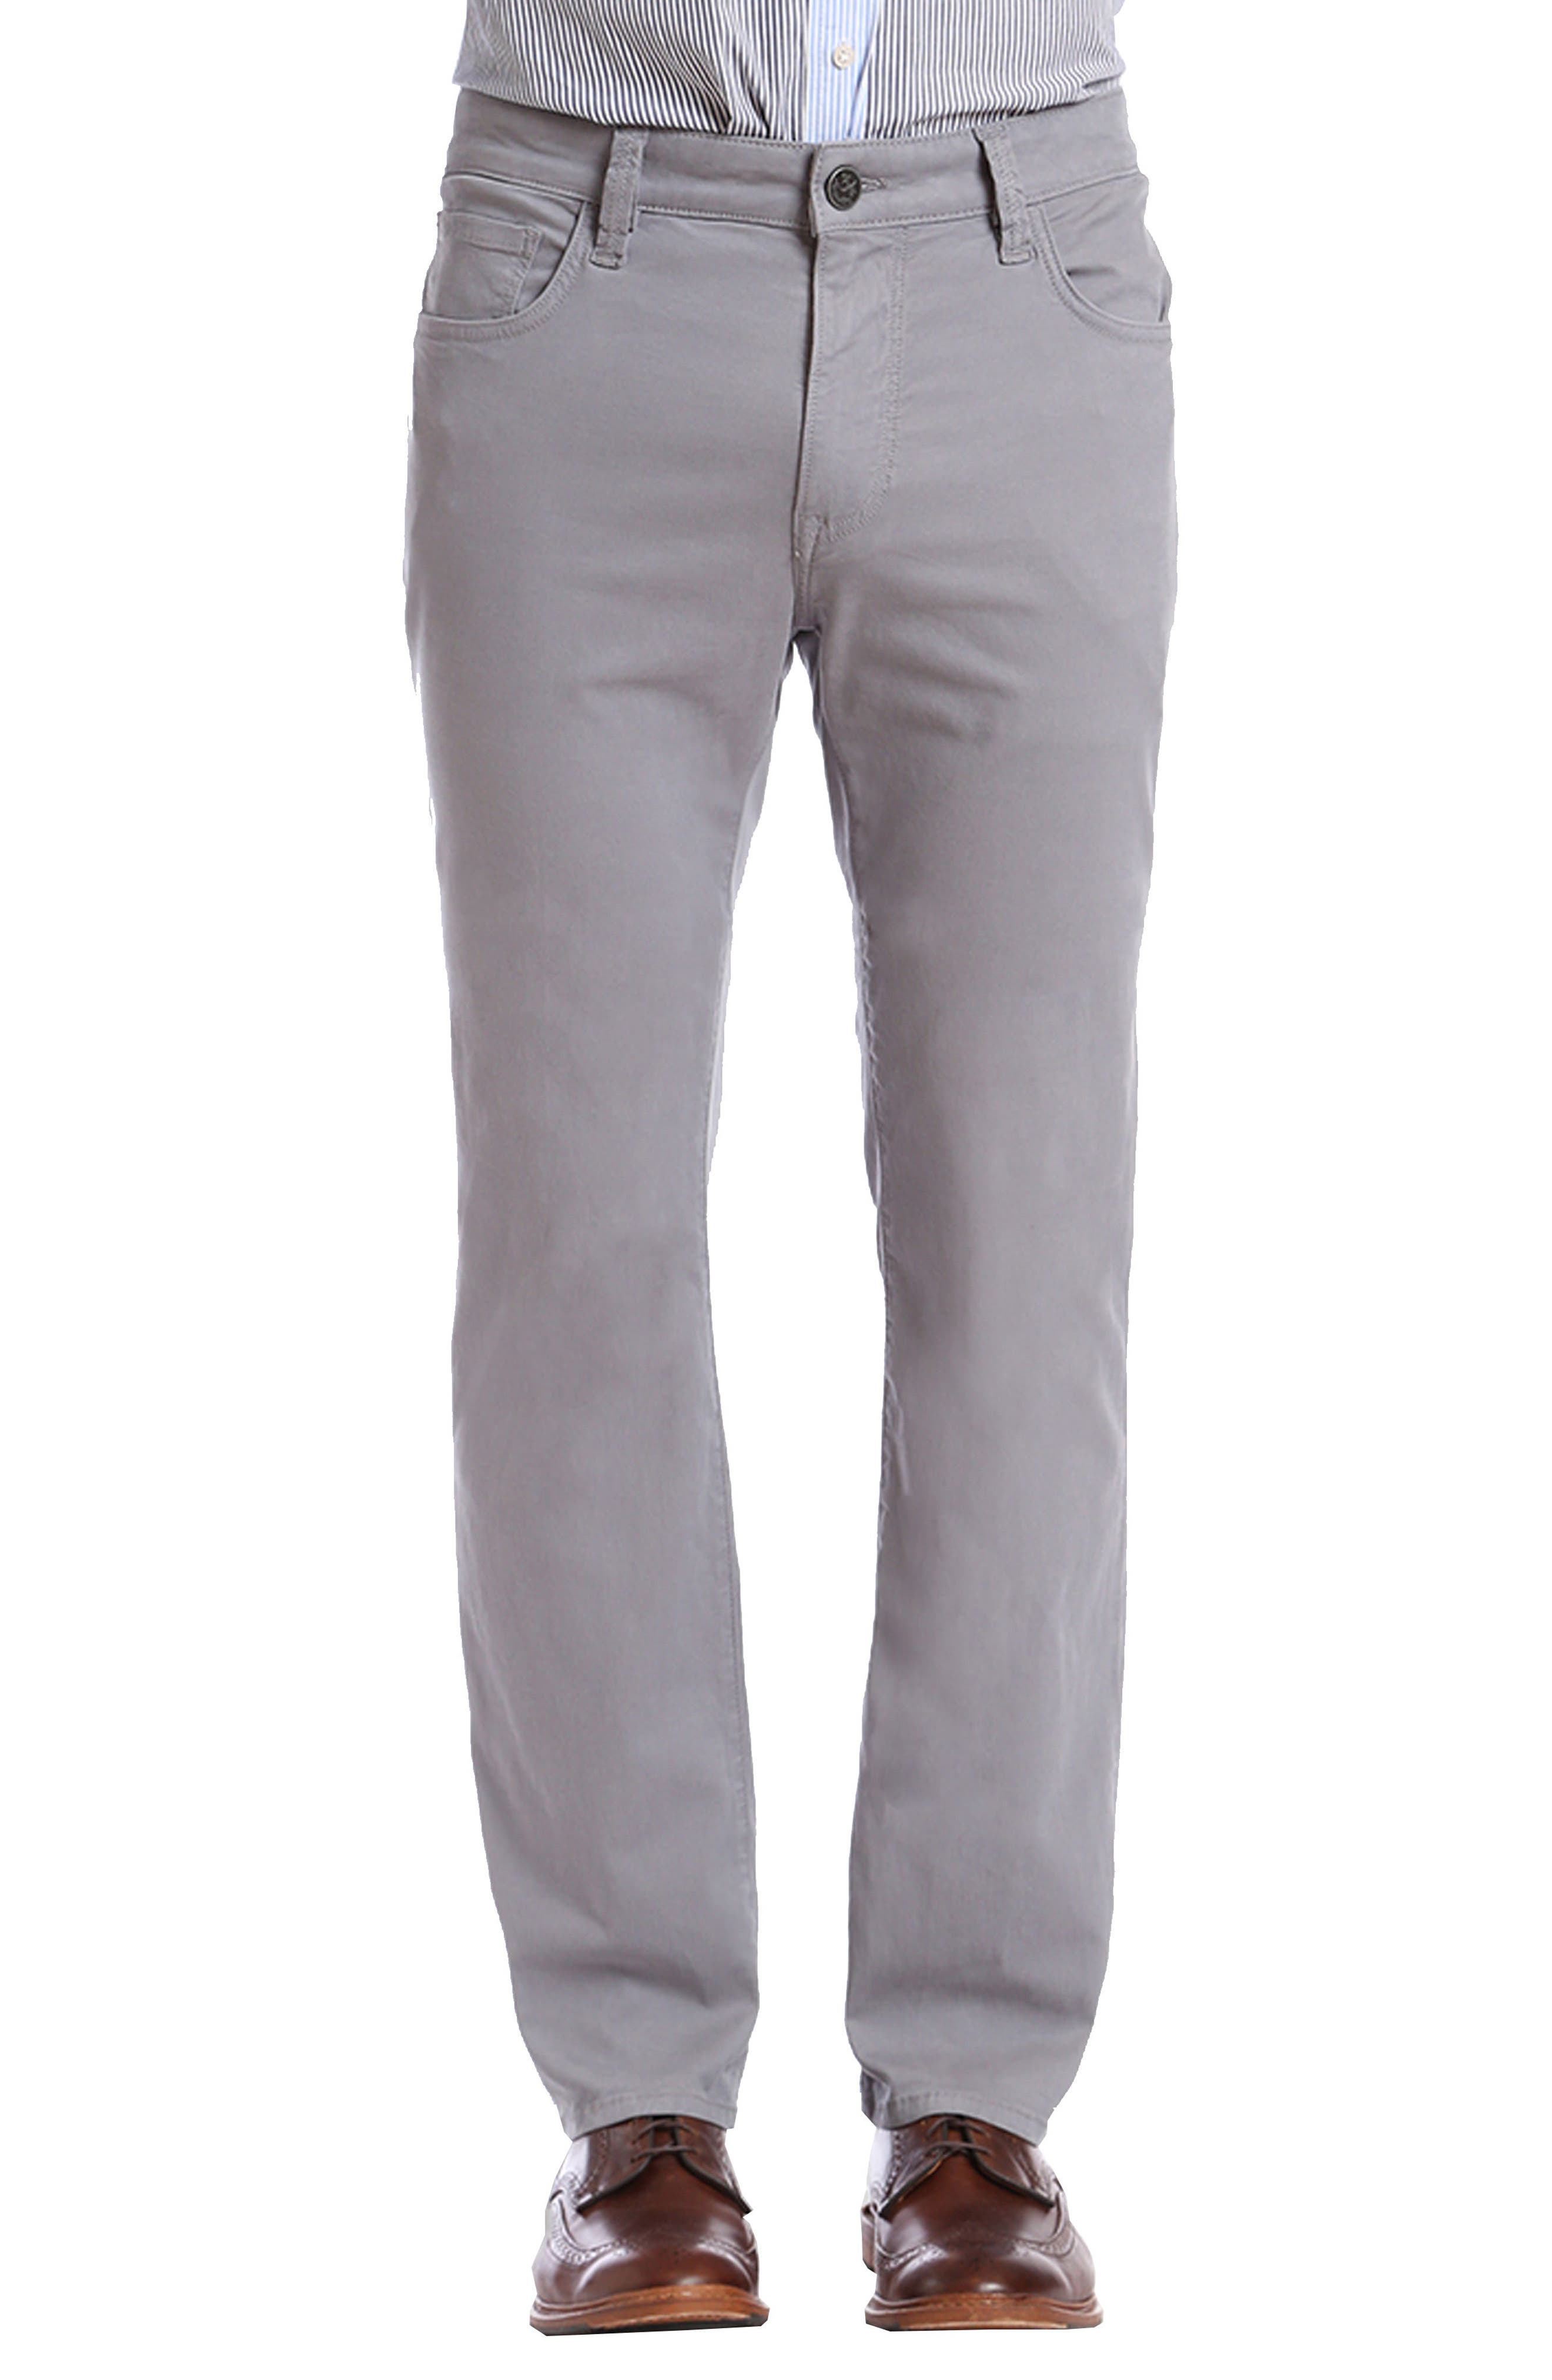 Courage Straight Leg Twill Pants,                         Main,                         color, GREY FINE TWILL